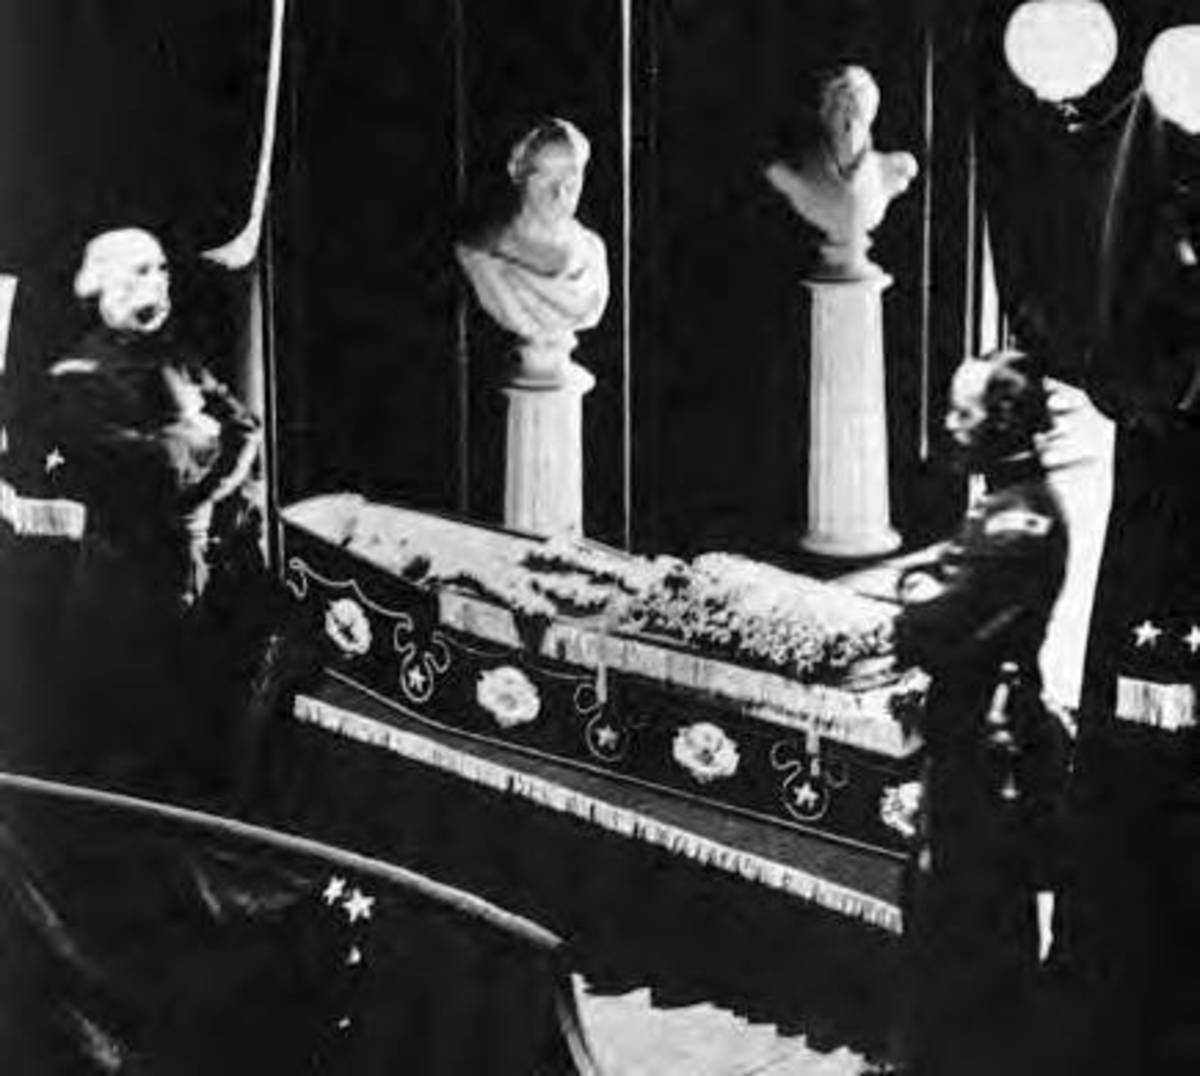 President Lincoln In His Coffin In City Hall In New York City. This is the only photo known to exist of President Lincoln in his coffin.